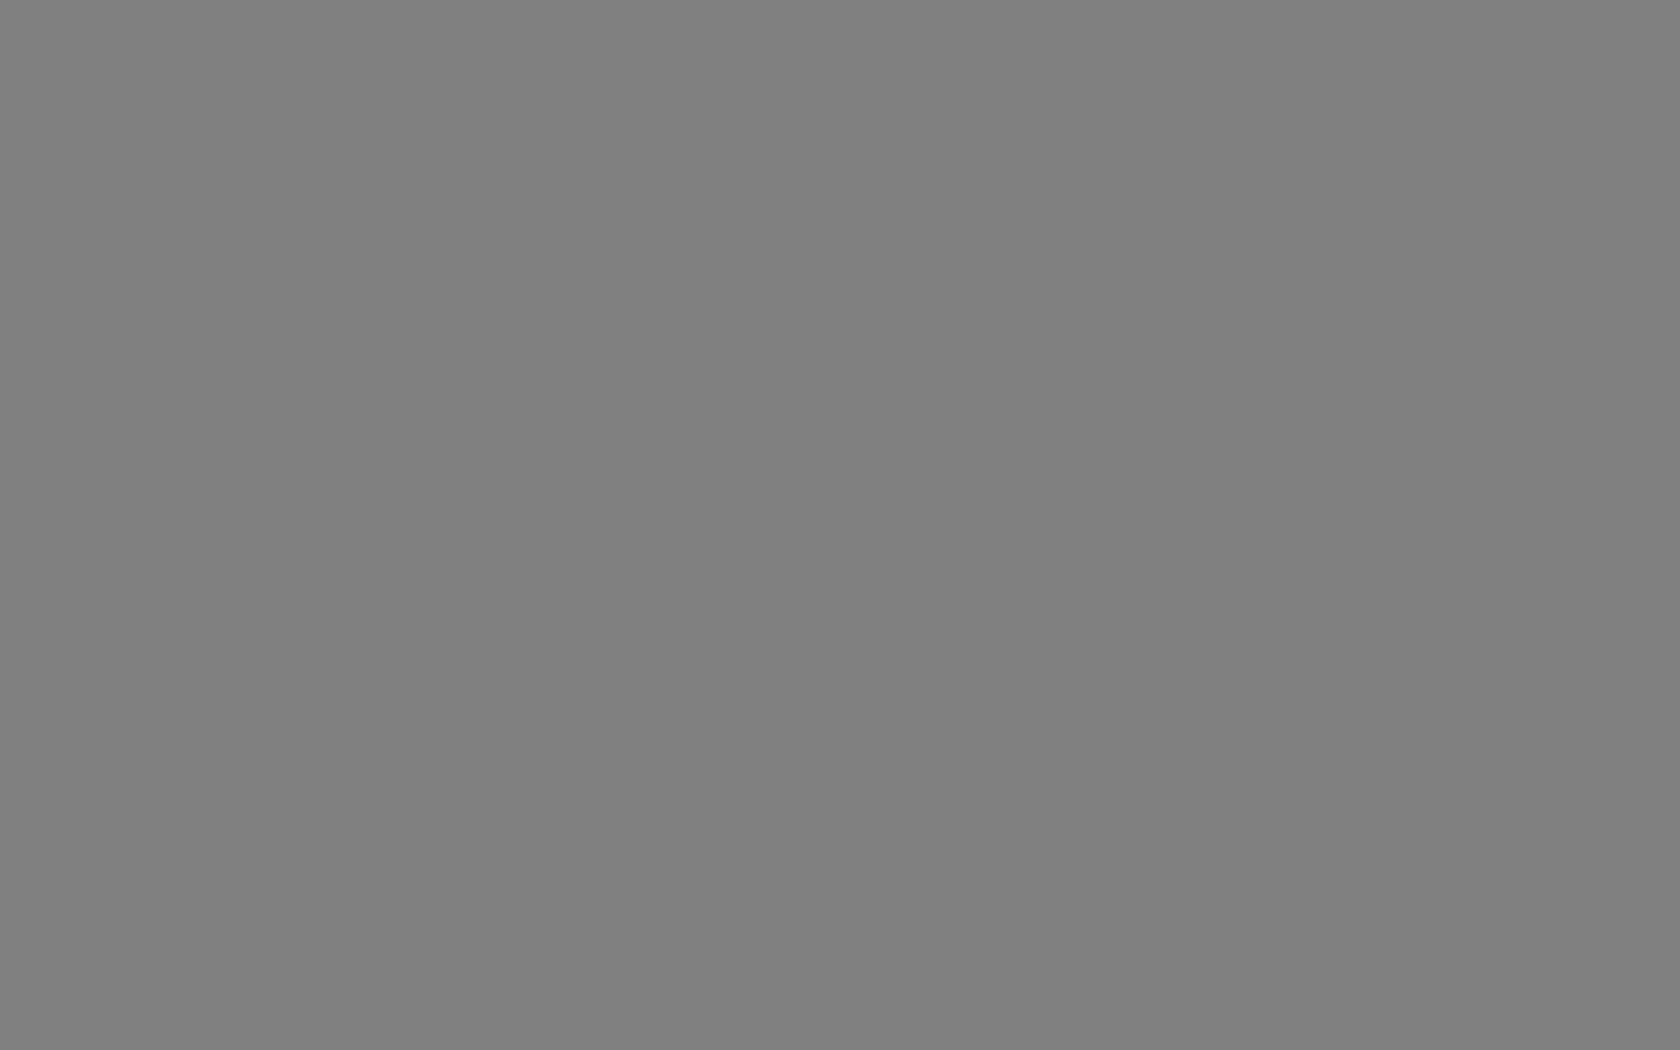 1680x1050 Gray Solid Color Background